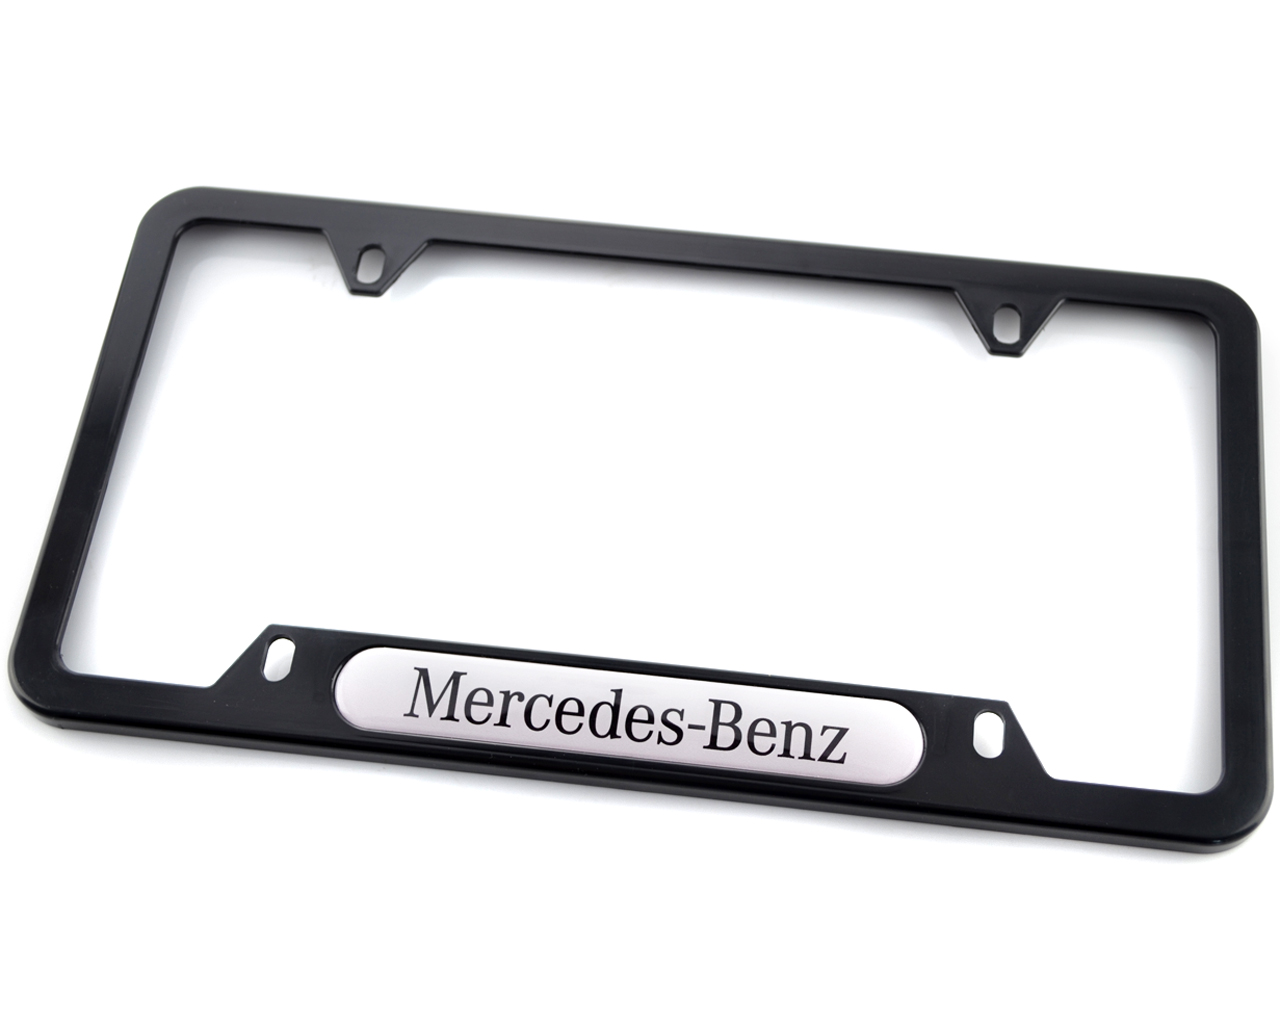 Standart license plates for mercedes benz frames mercedes for Mercedes benz license plate logo